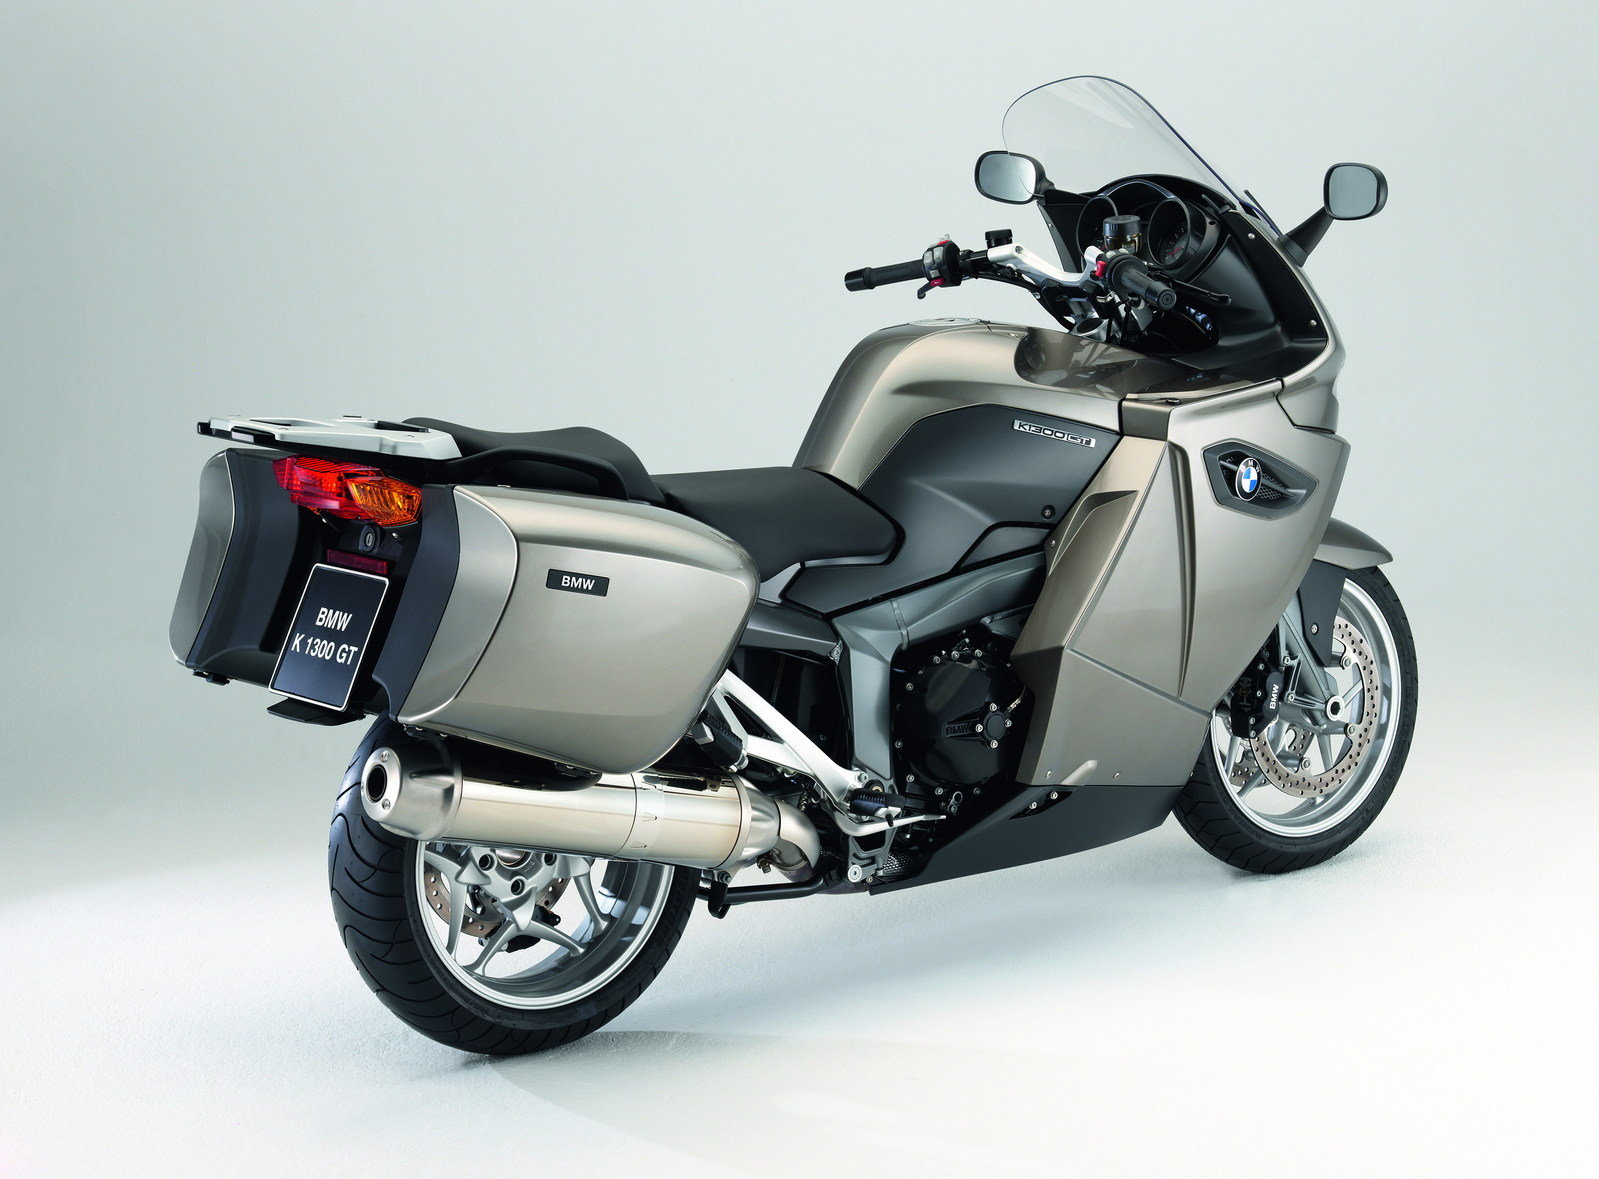 2009 bmw k 1300 gt picture 303133 motorcycle review. Black Bedroom Furniture Sets. Home Design Ideas